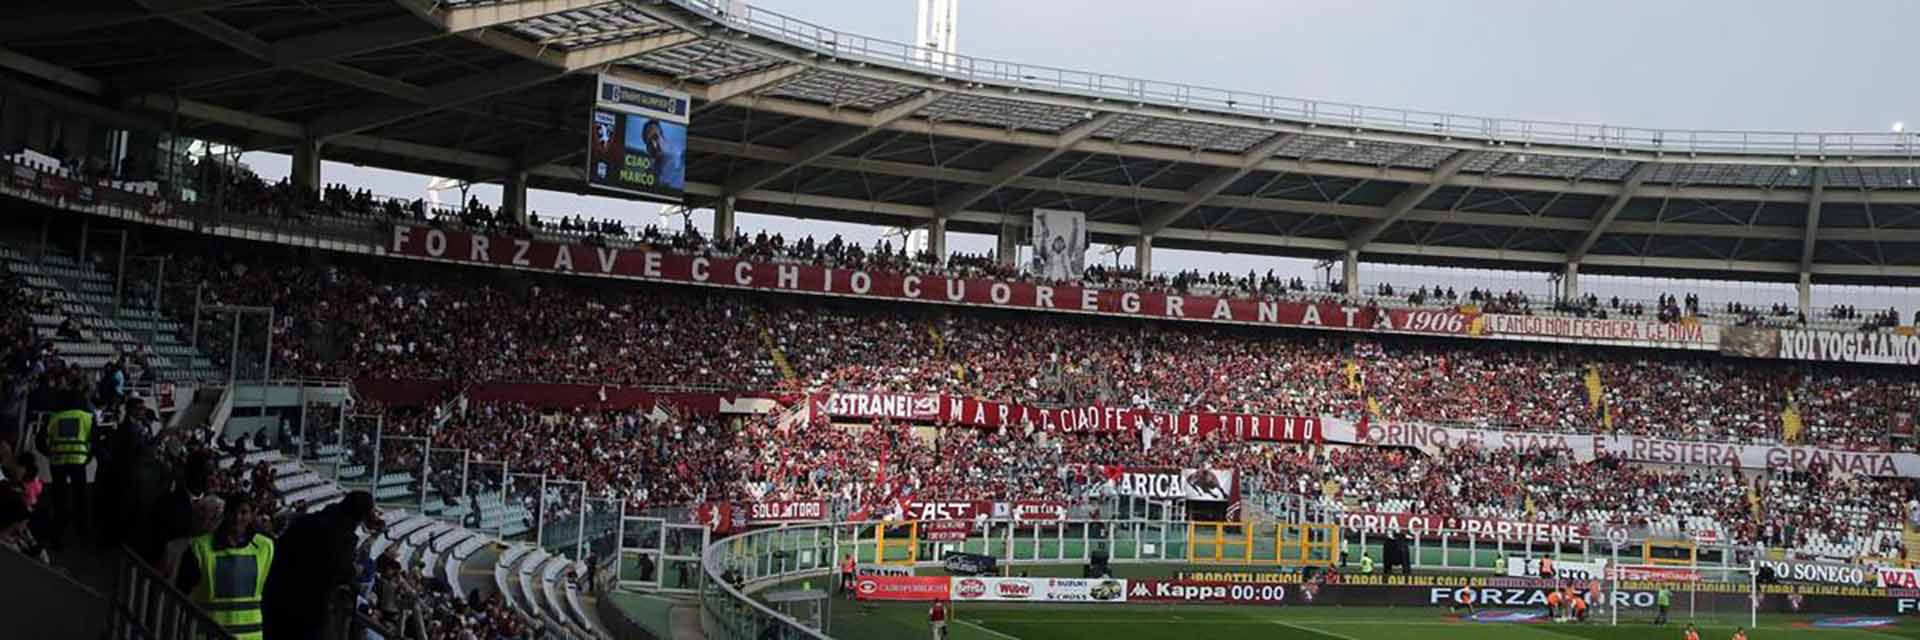 Torino FC - Udinese, 1 Marchat 18:45